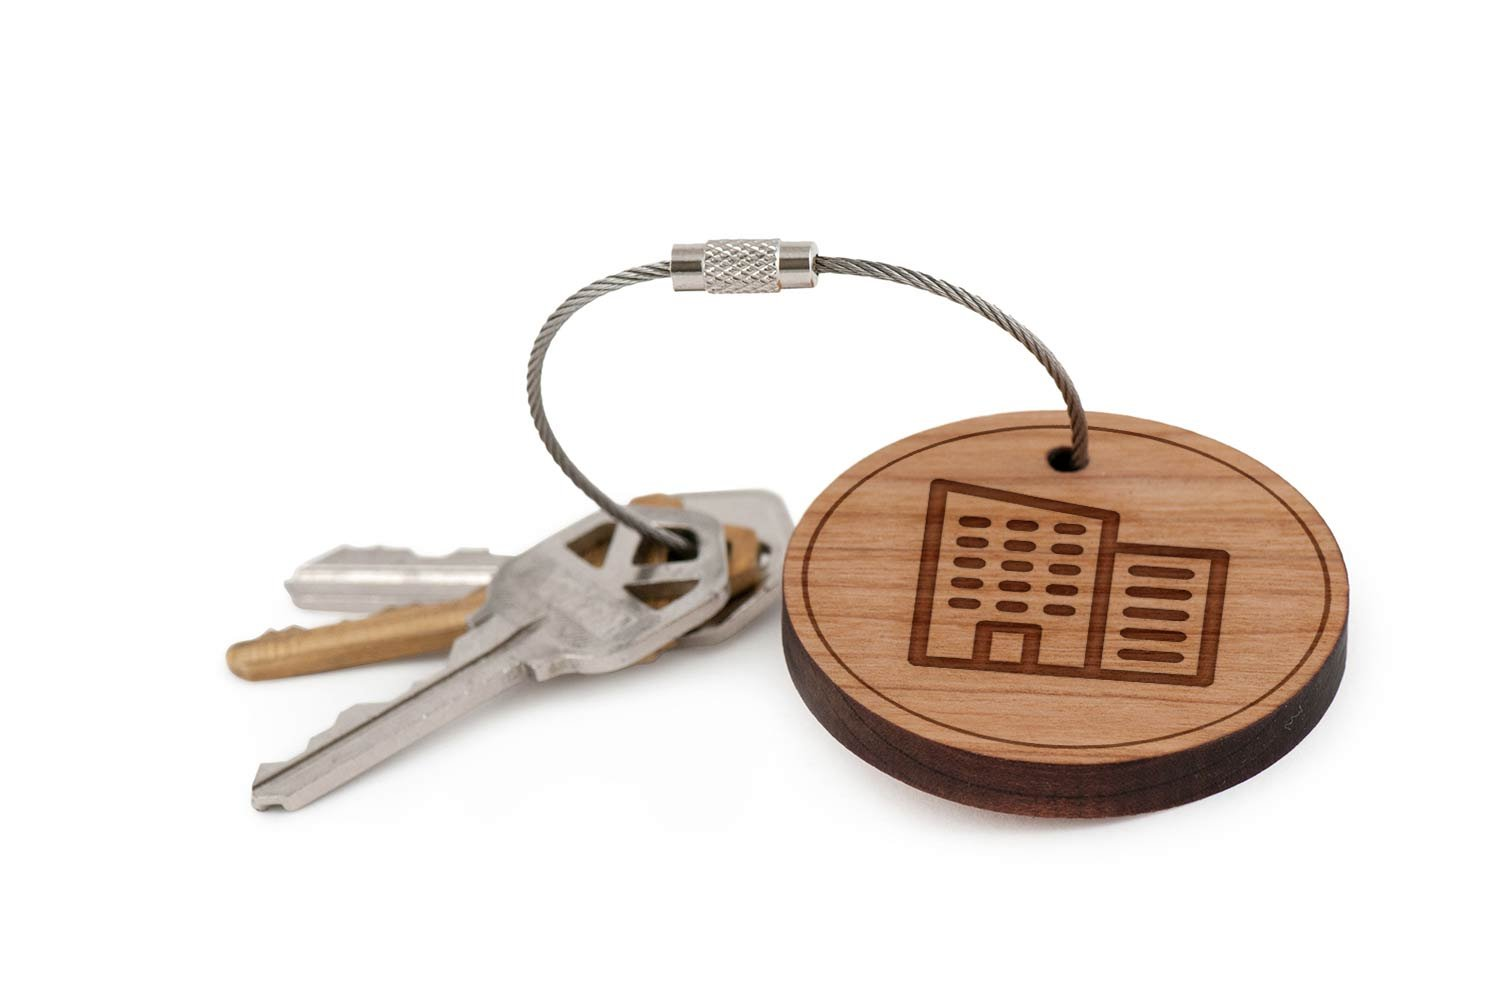 Flat Building Keychain, Wood Twist Cable Keychain - Small WoodenAccessoriesCo